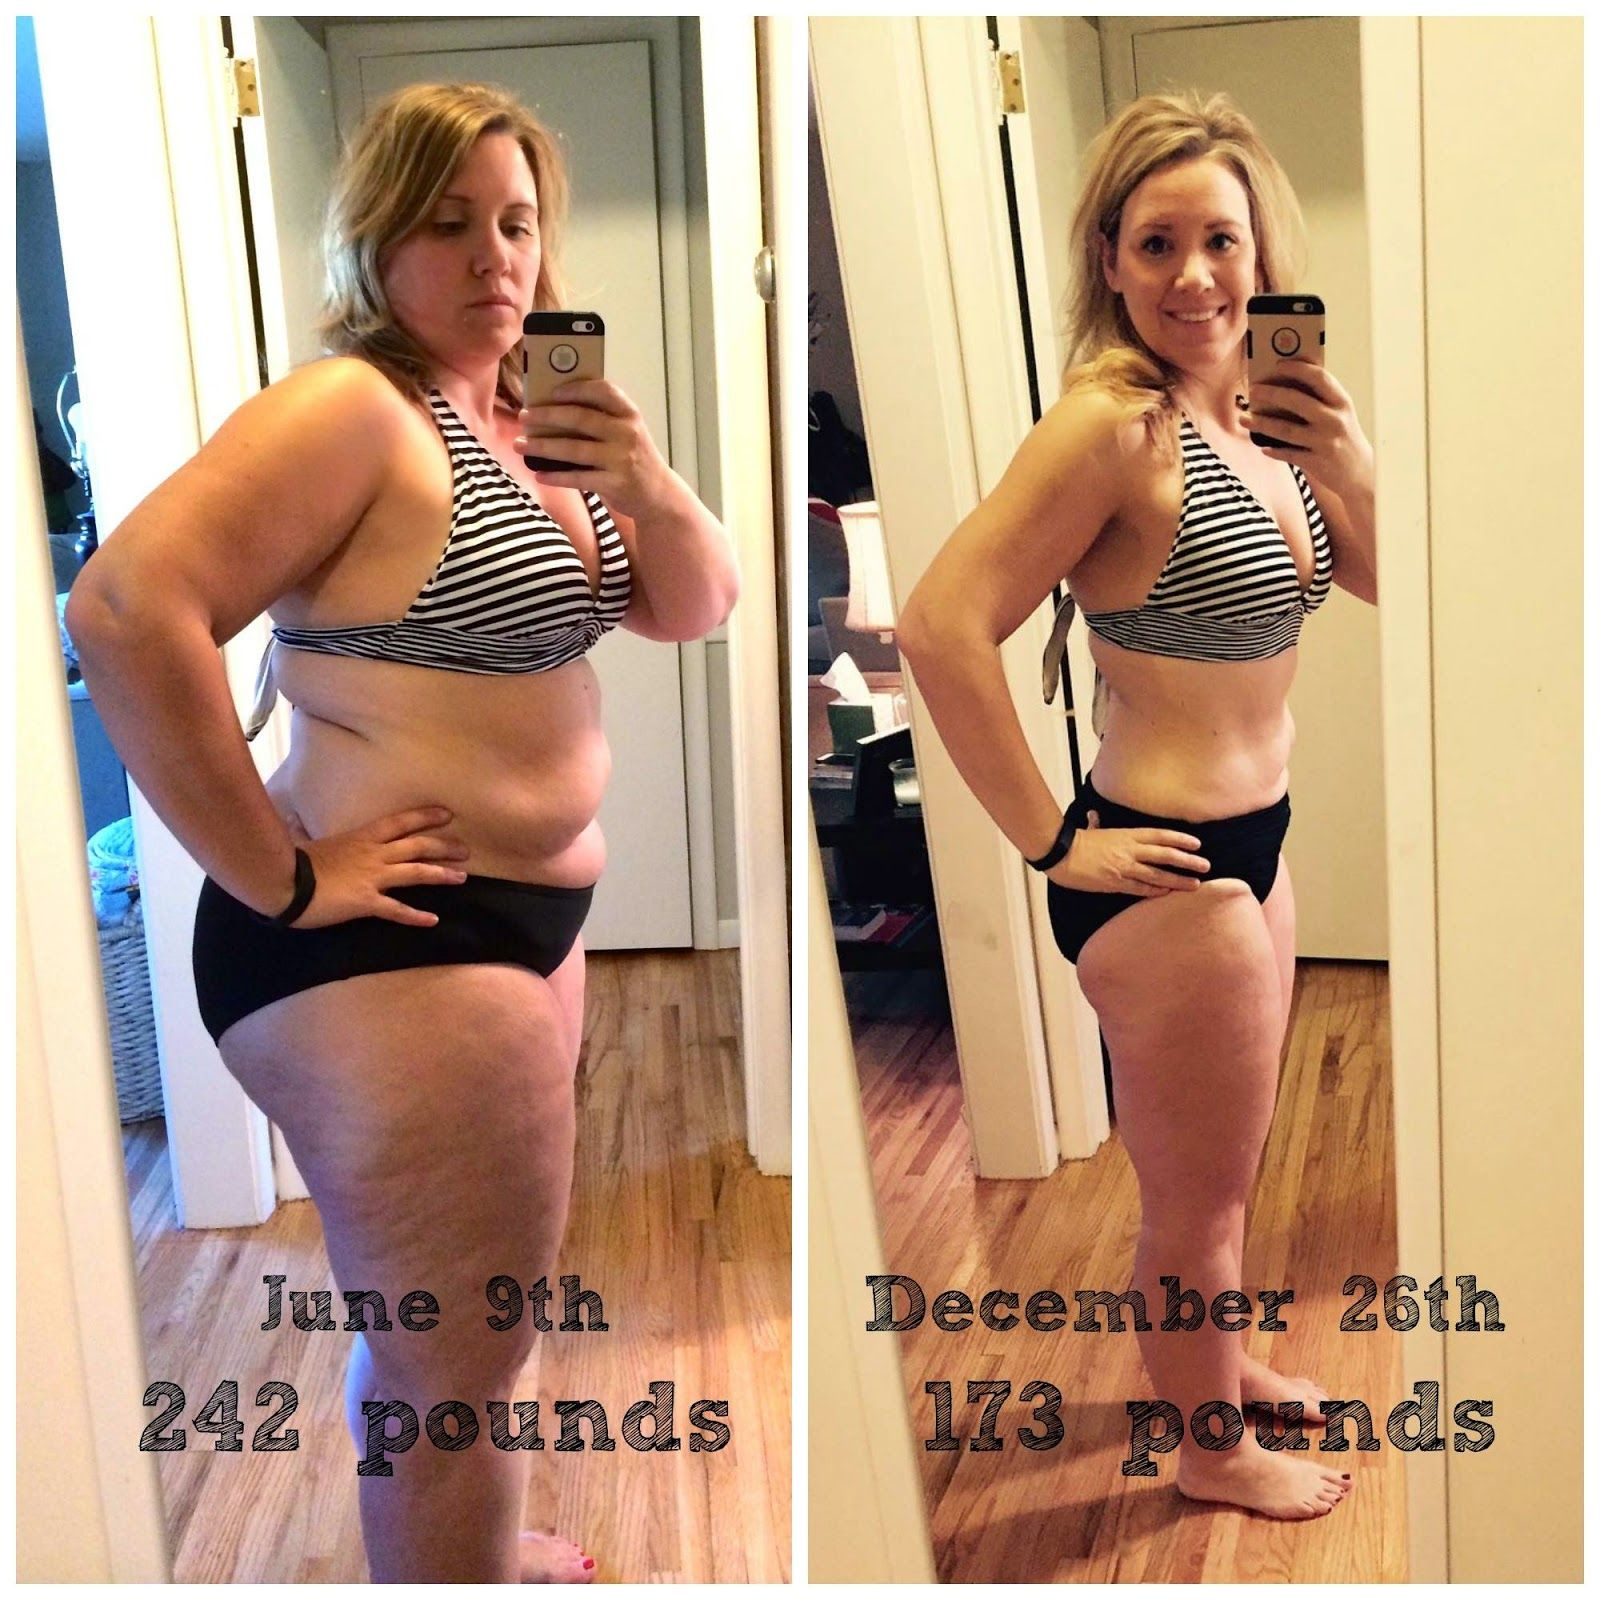 easy bruising after weight loss surgery